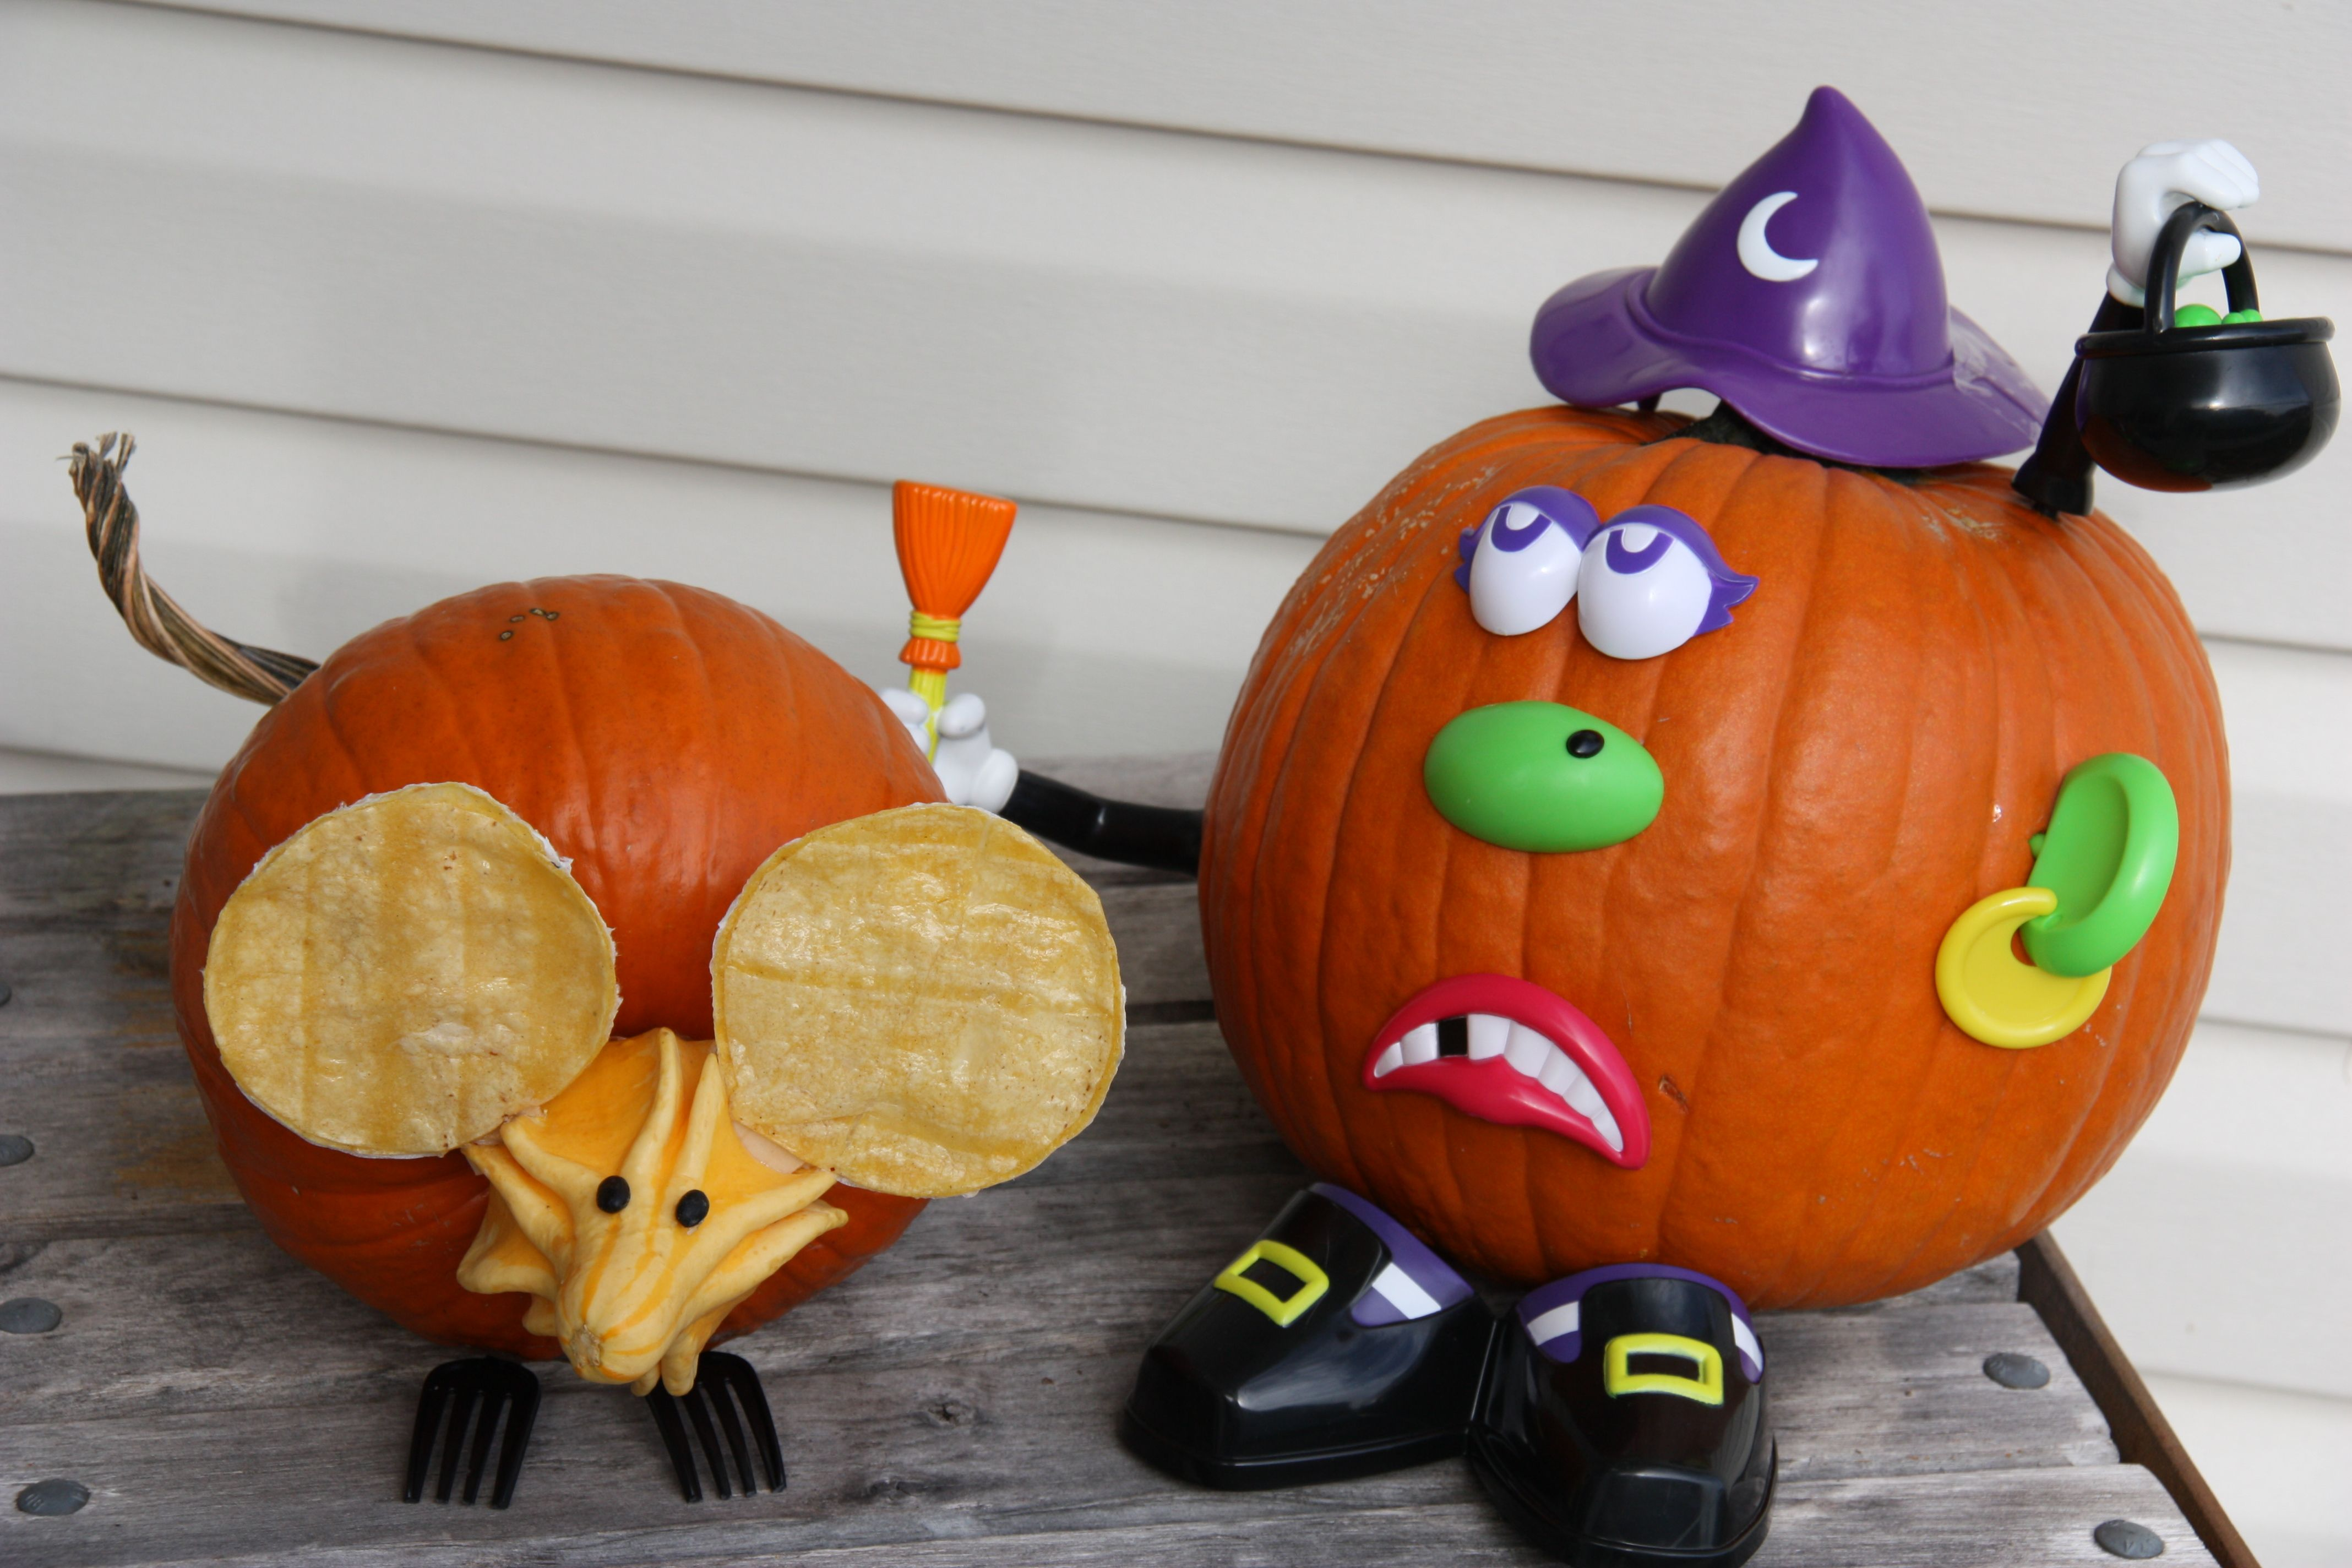 Mouse pumpkin (on left) made with:  a pumpkin with a long, twisty stem; a gourd; two black beans (eyes); some Mod Podged tortillas & two plastic forks.